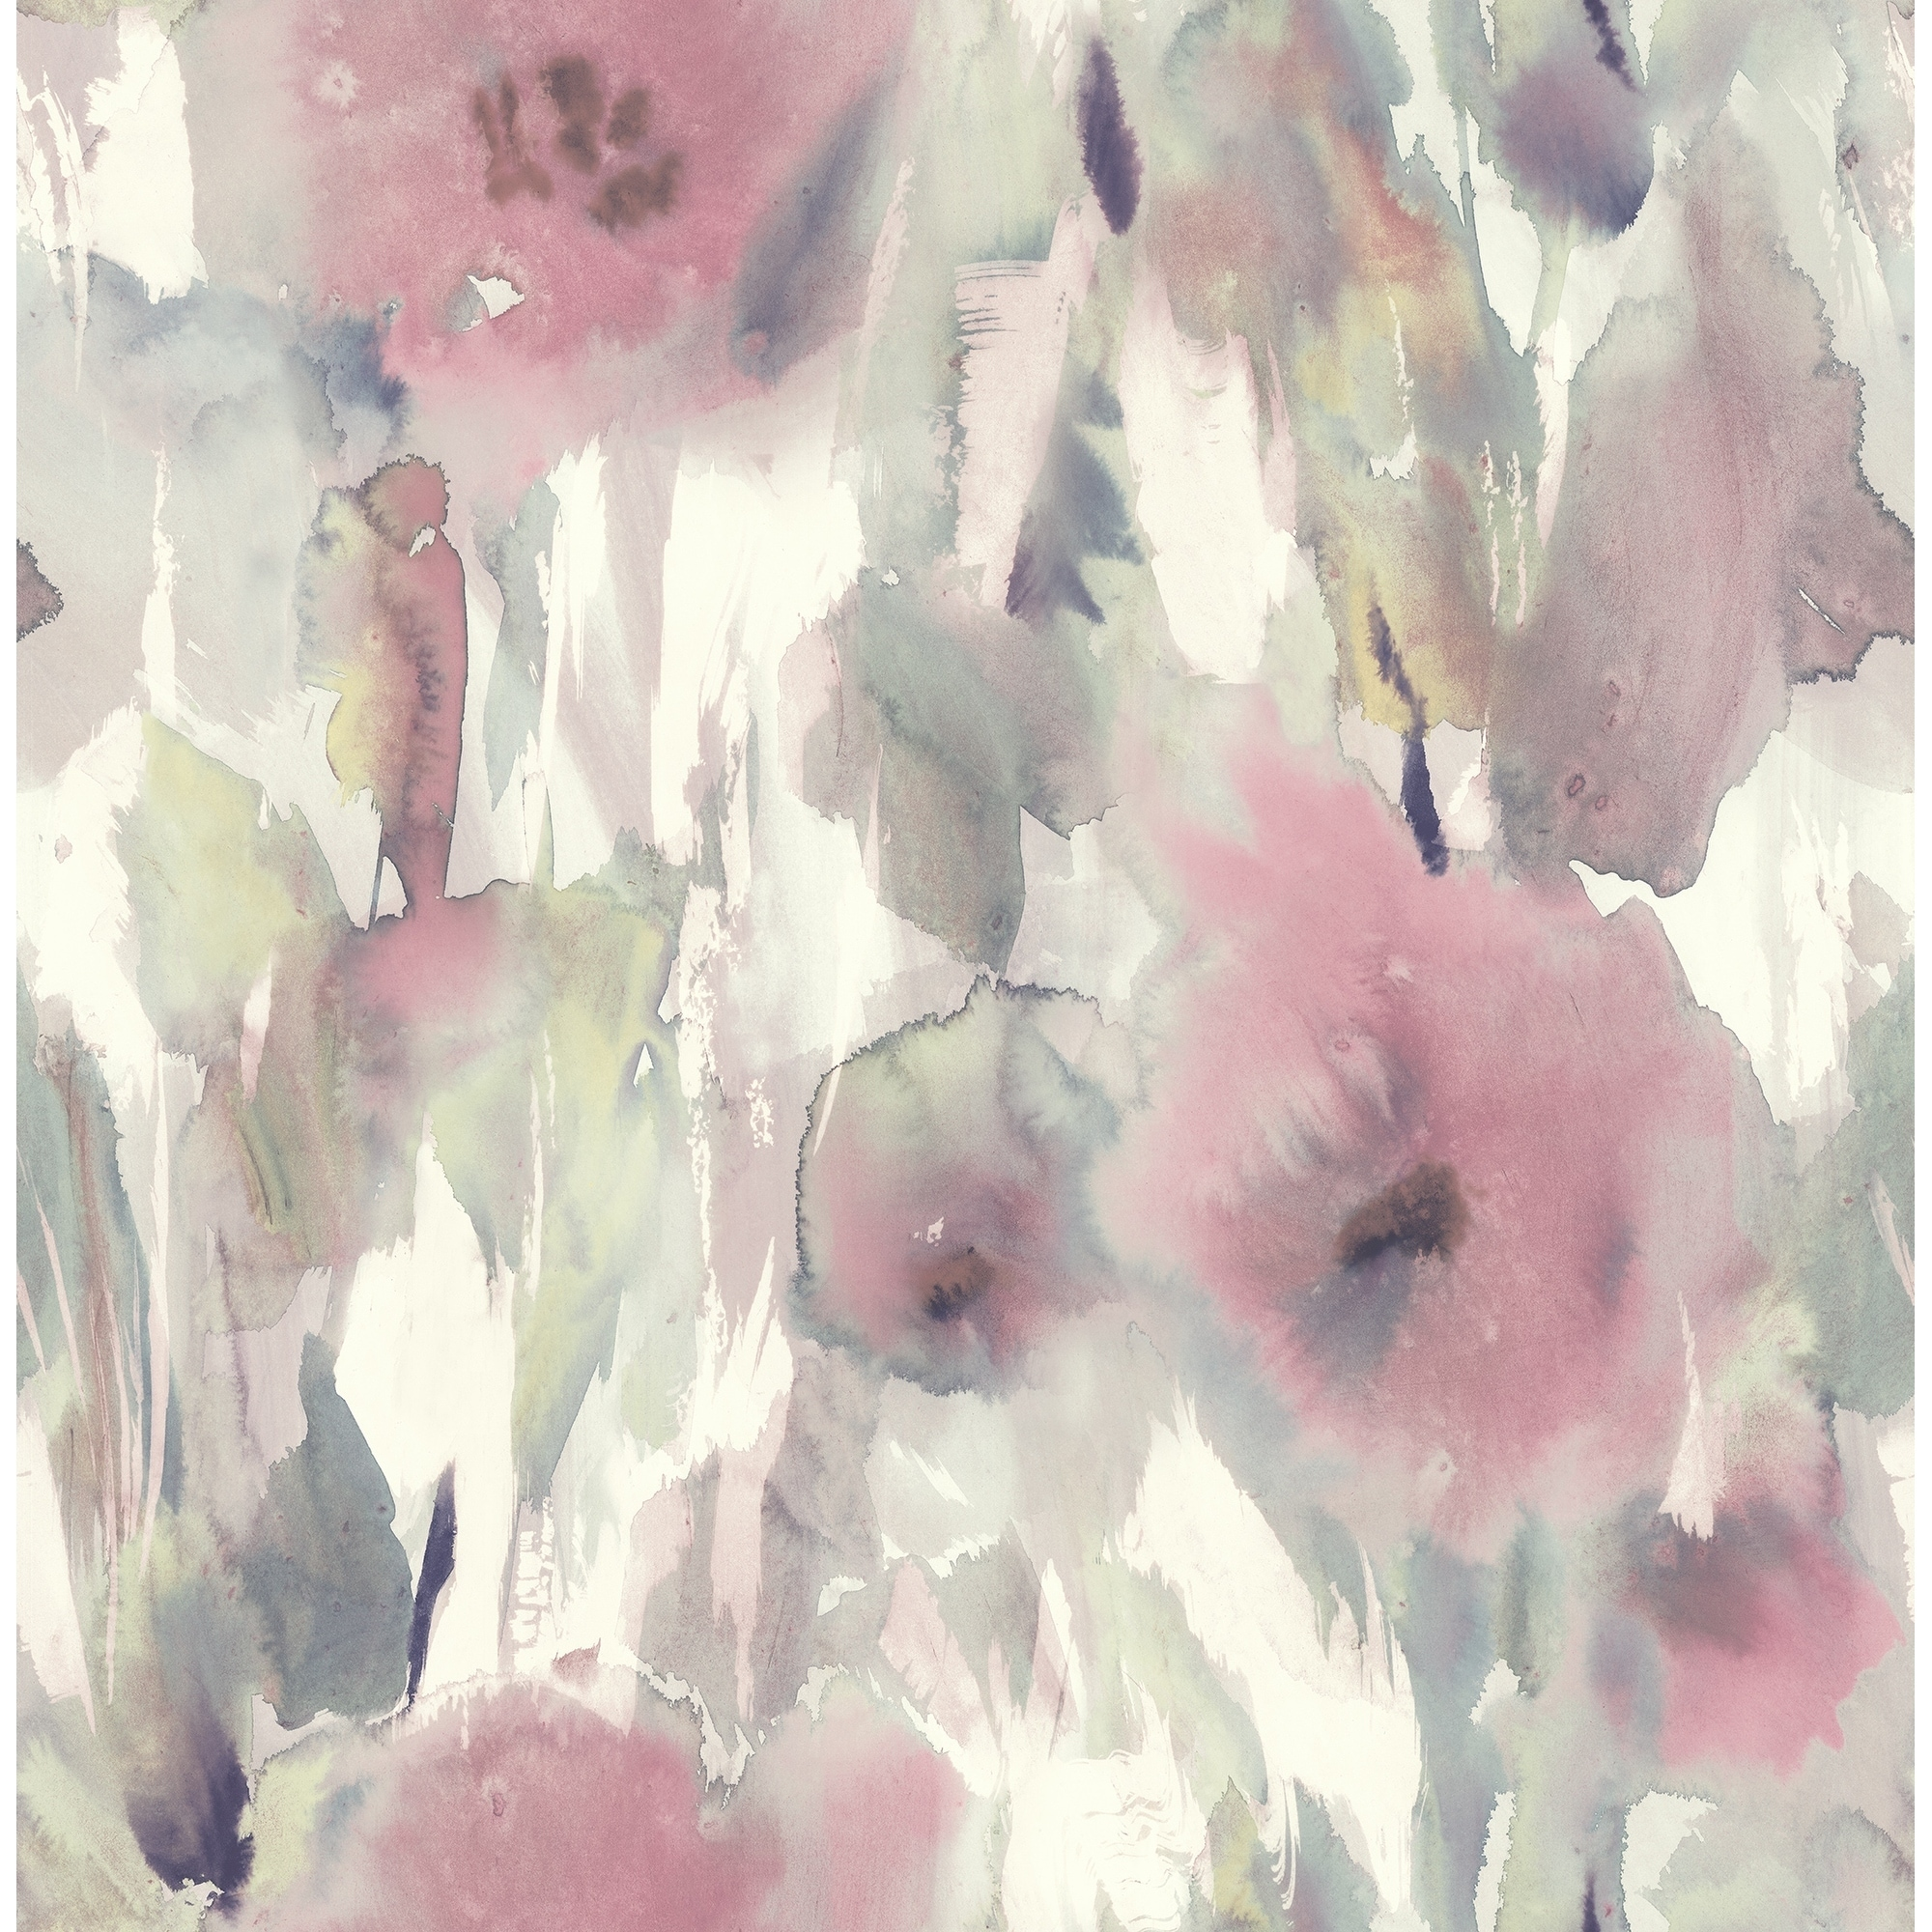 Shop Satin Watercolor Floral Wallpaper 32 81 Feet Long X 20 5